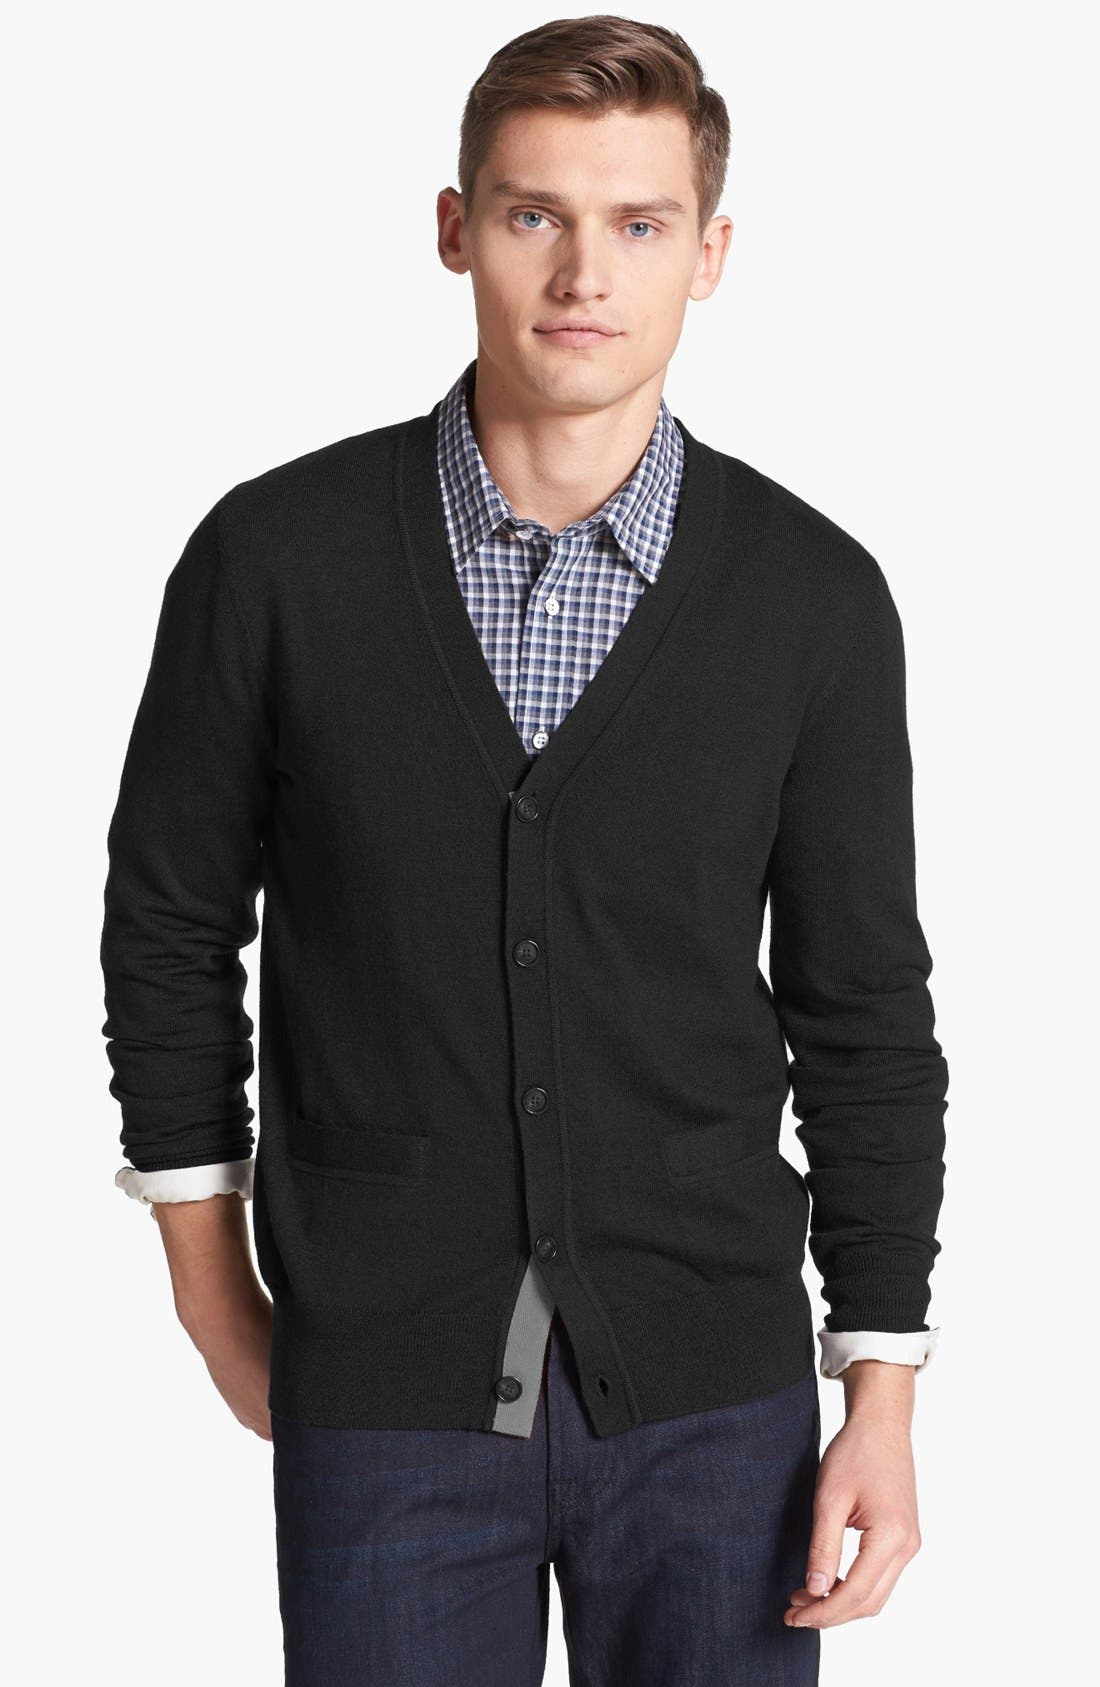 JACK SPADE, 'Brockman' Merino Wool Cardigan, Main thumbnail 1, color, 001